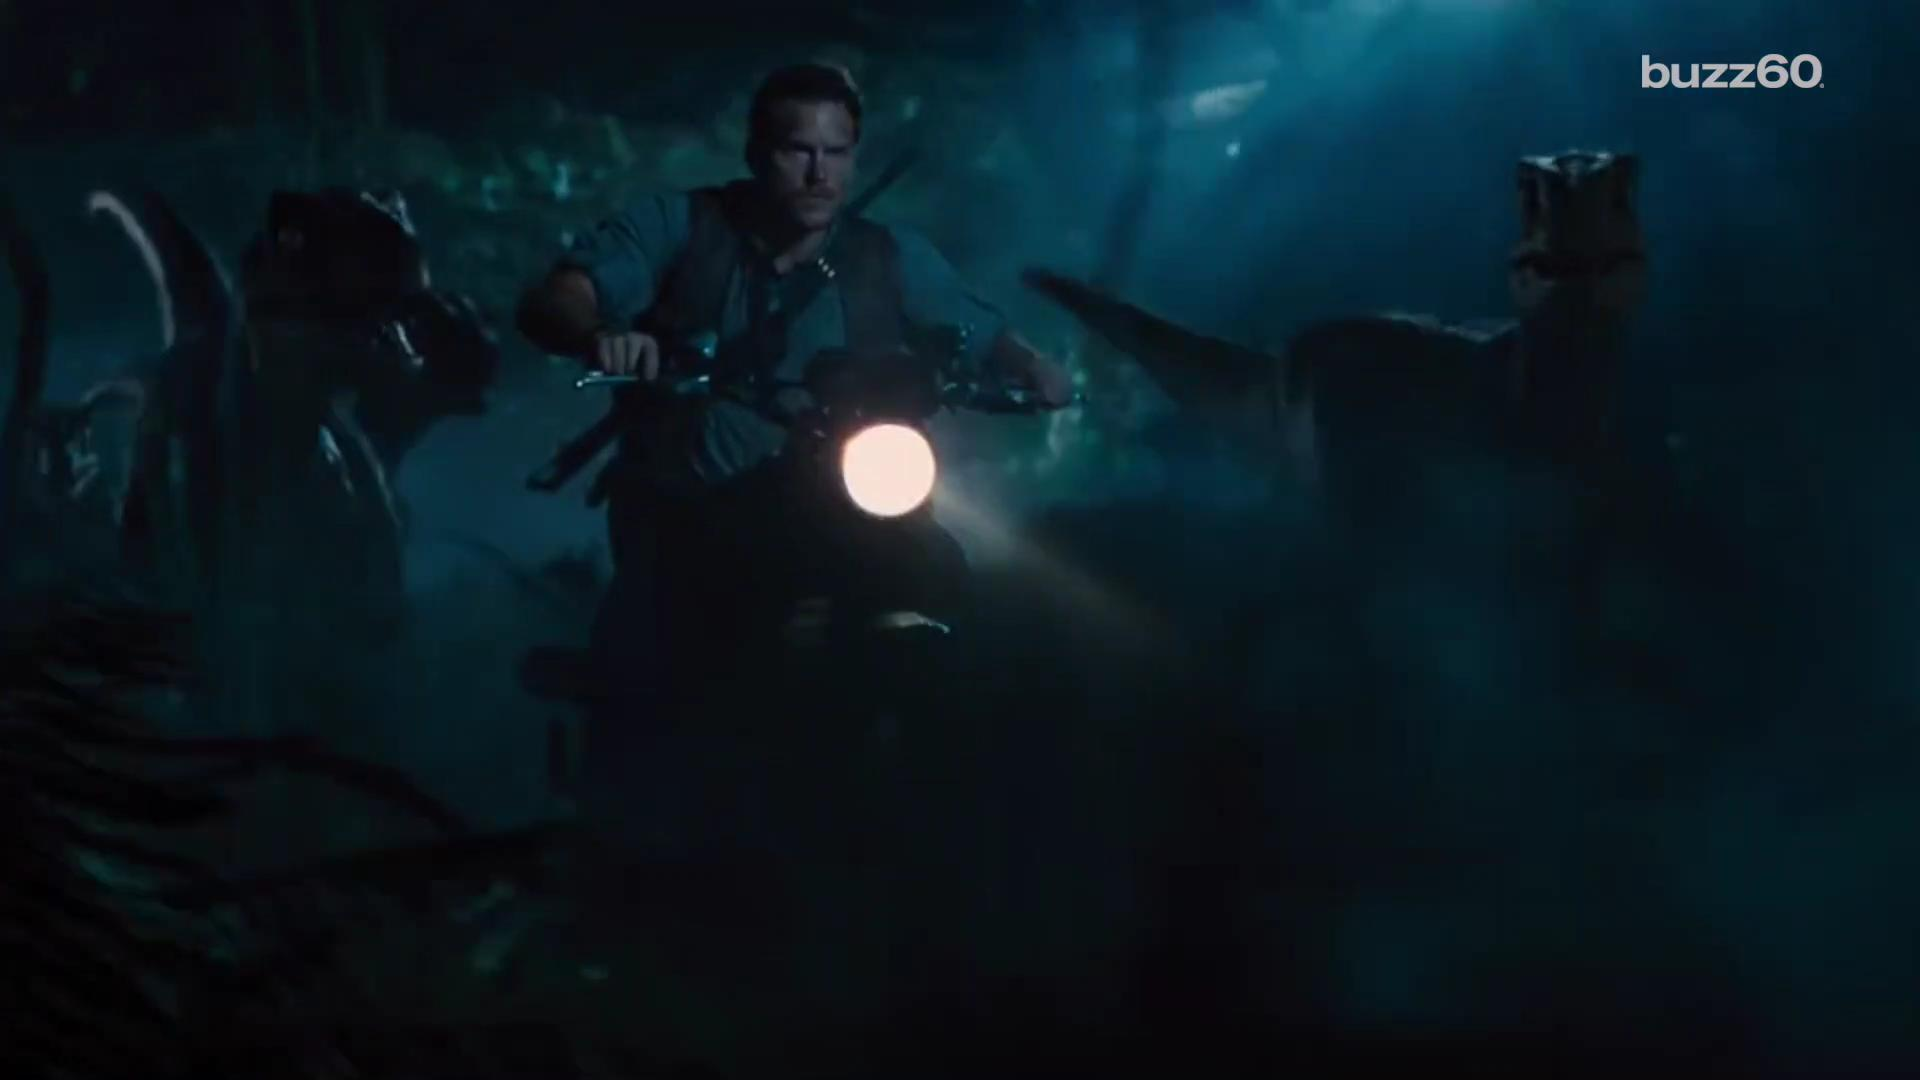 What We Know About 'Jurassic World 2'